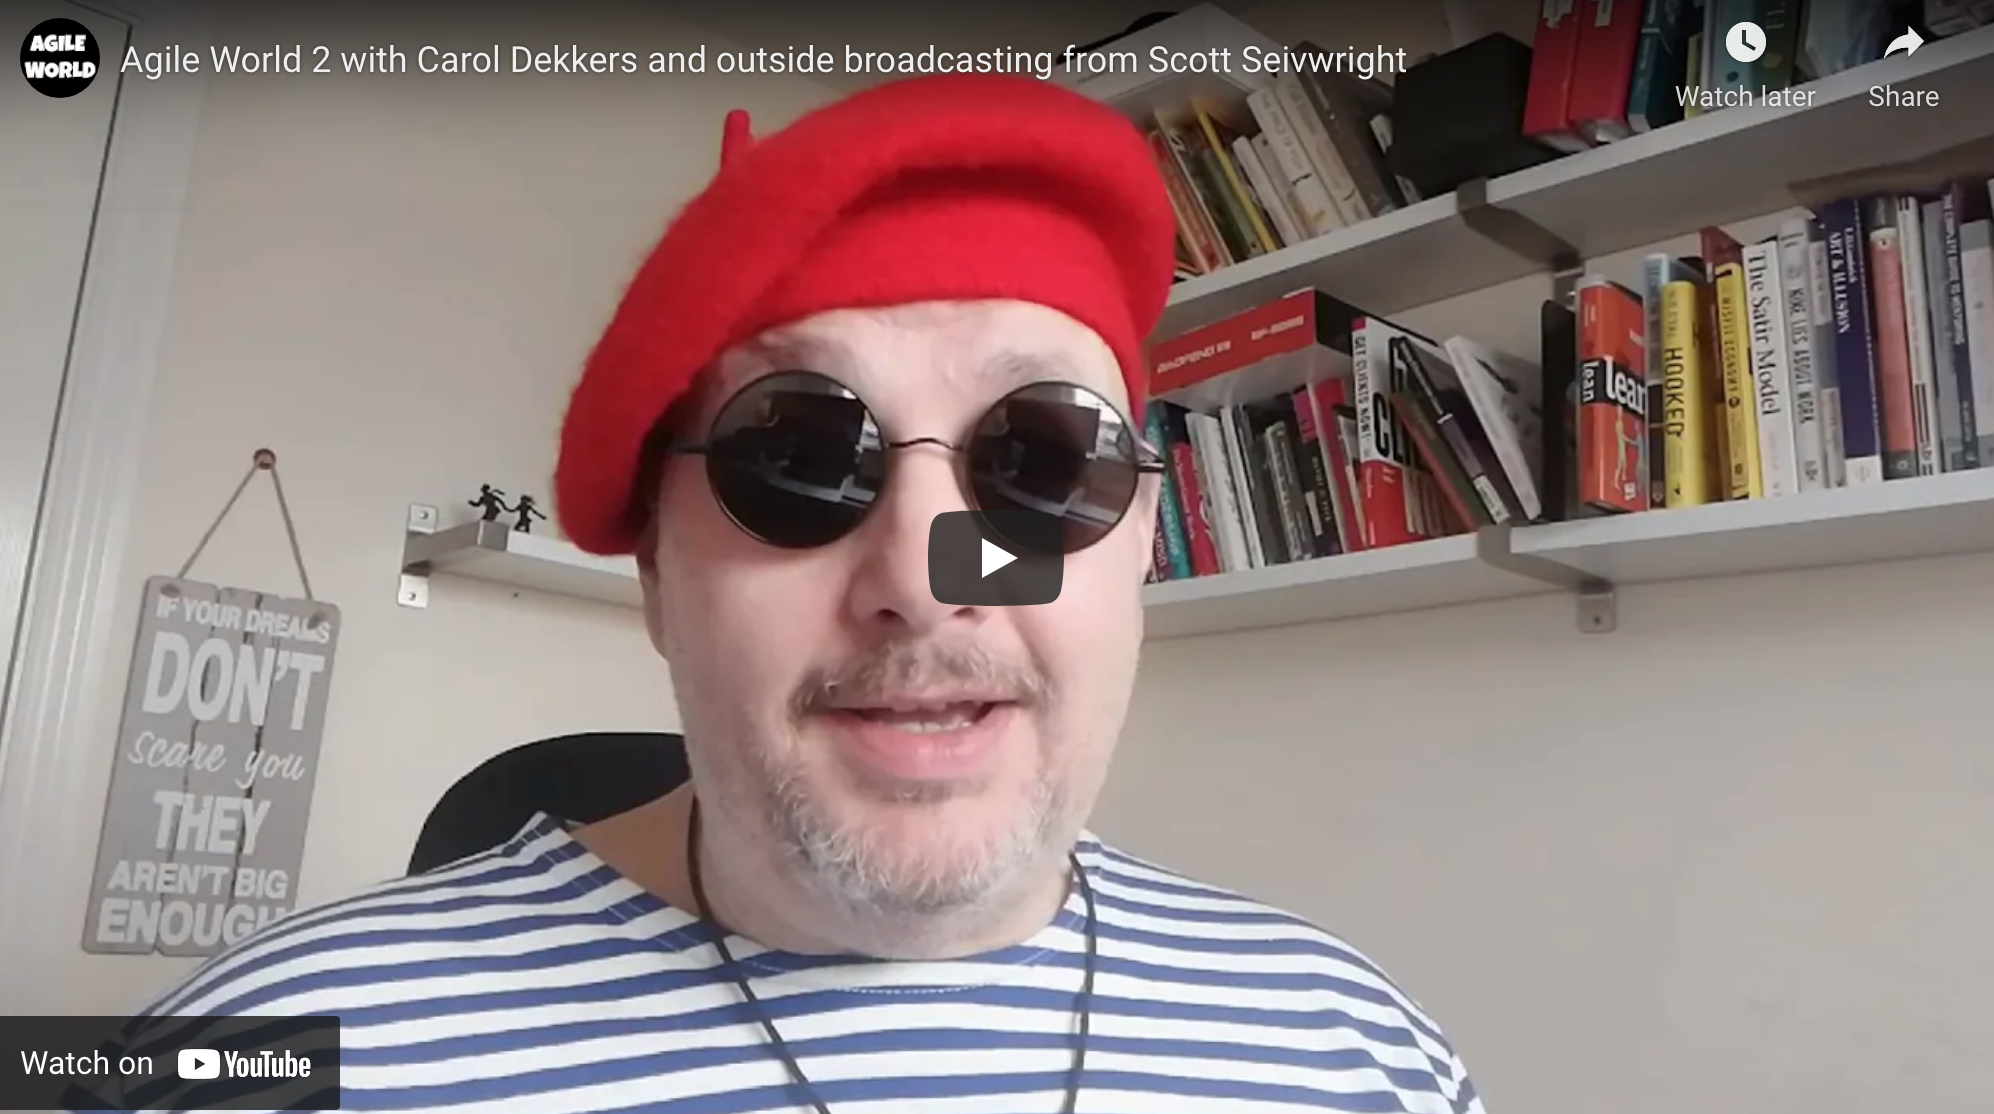 Agile World S1 E2 with Carol Dekkers and outside broadcasting from Scott Seivwright